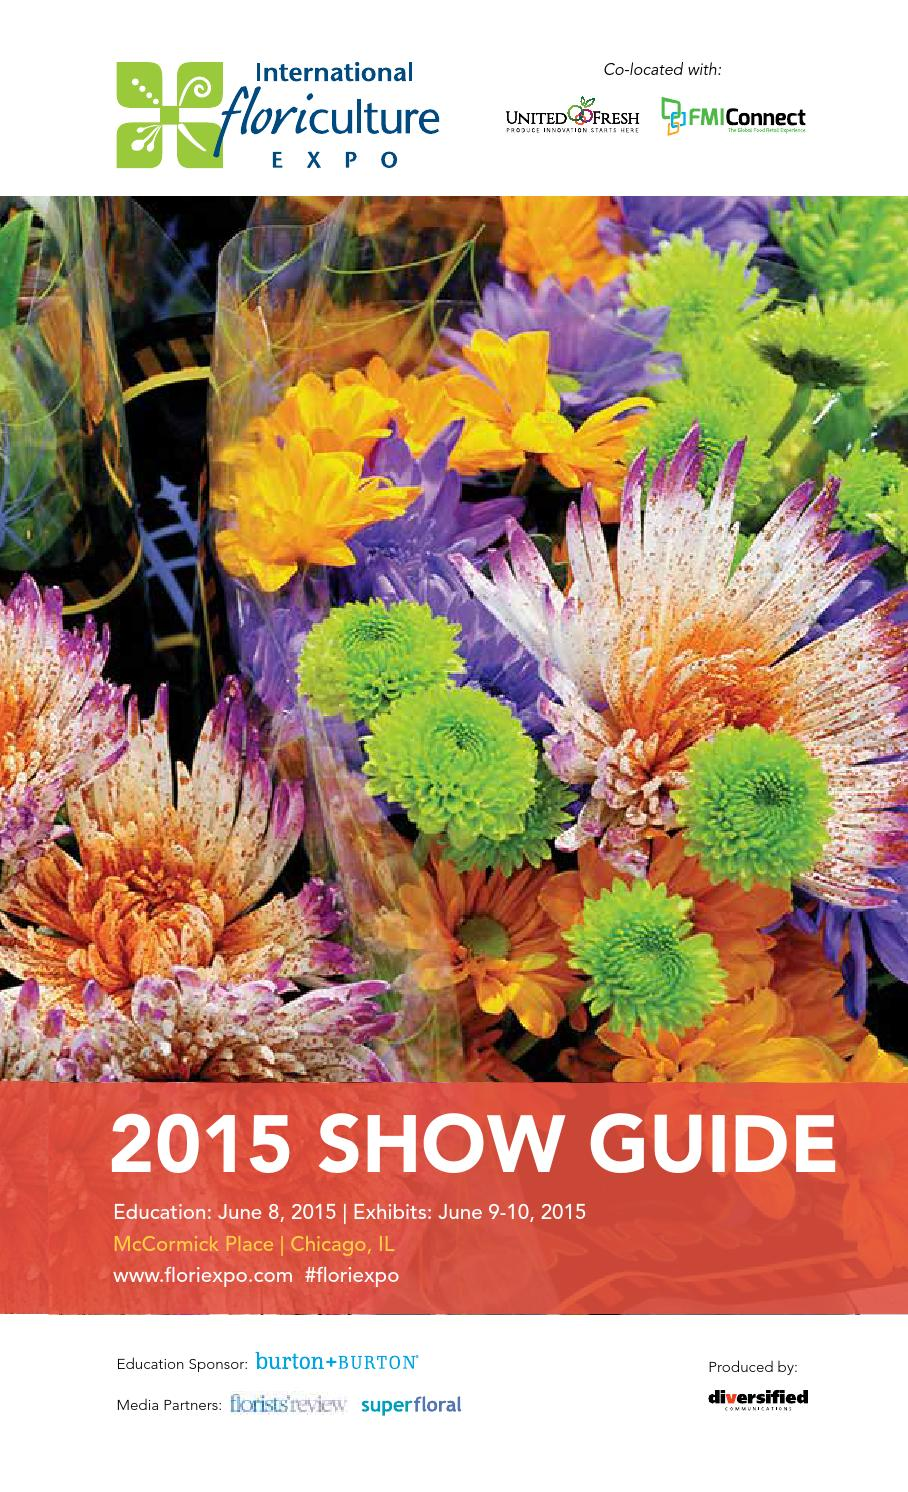 international floriculture expo 2015 show guide by diversified